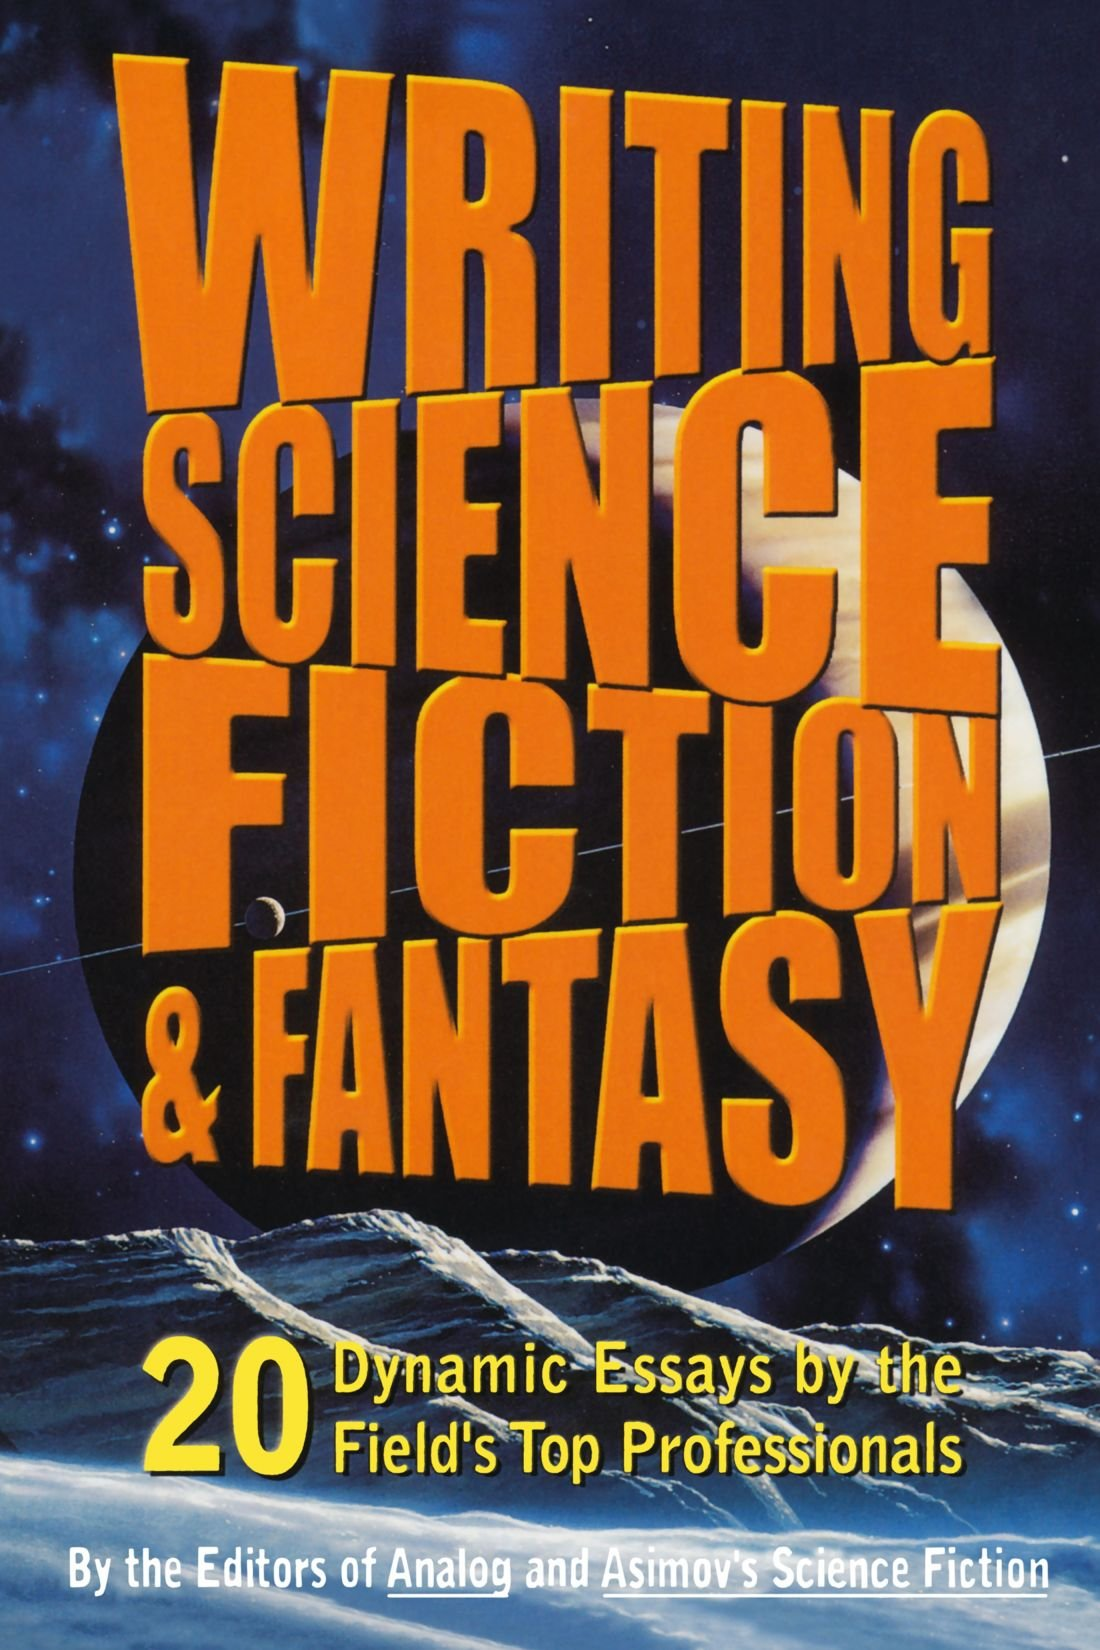 writing science fiction fantasy 20 dynamic essays by the writing science fiction fantasy 20 dynamic essays by the field s top professionals analog and isaac asimov s science fiction magazine 9780312089269